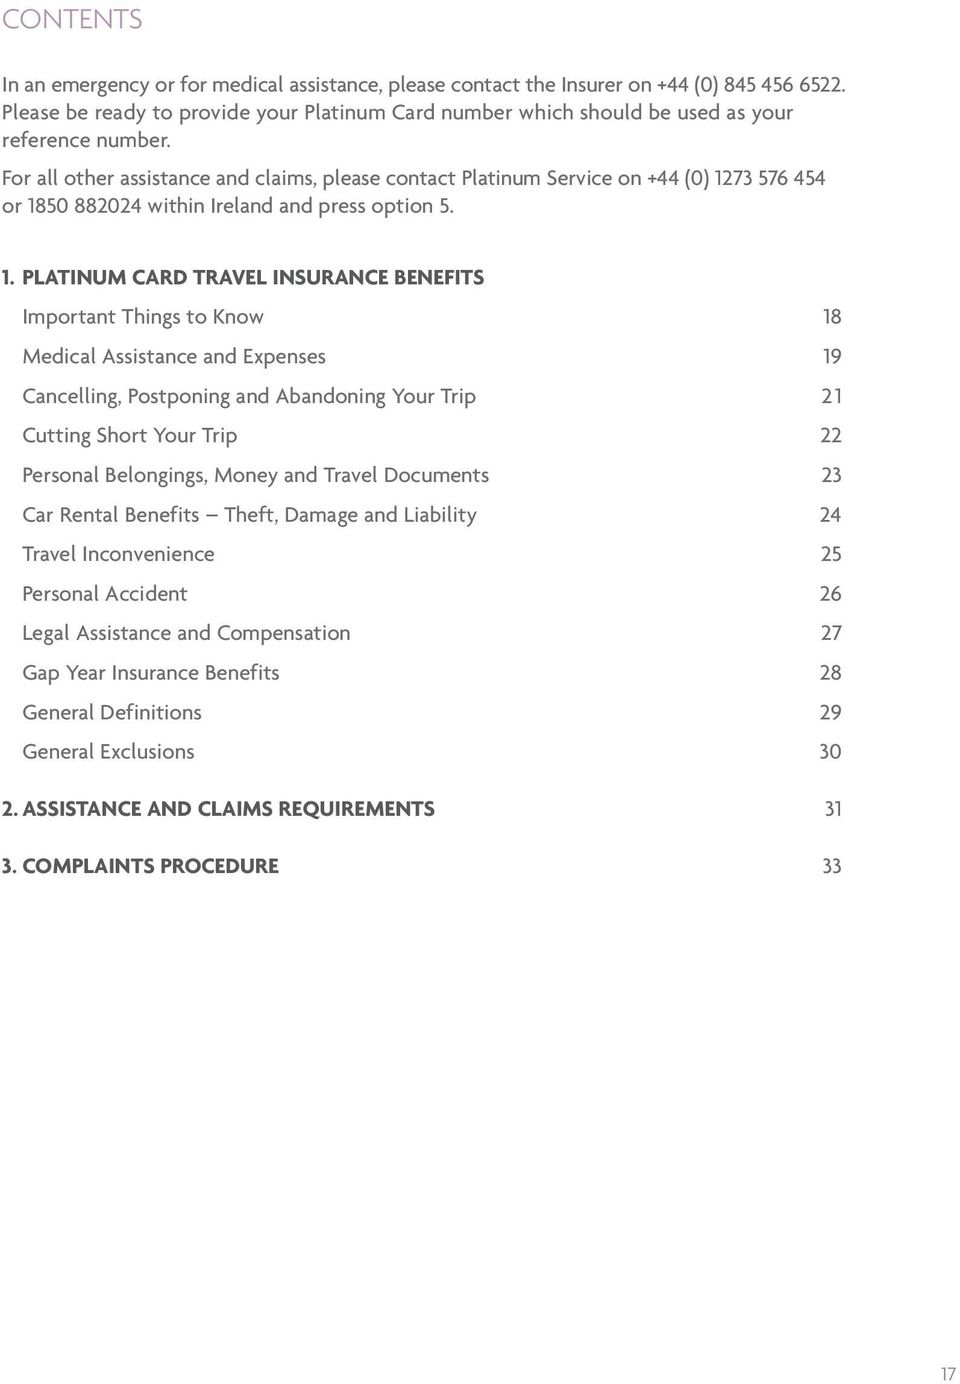 For all other assistance and claims, please contact Platinum Service on +44 (0) 12